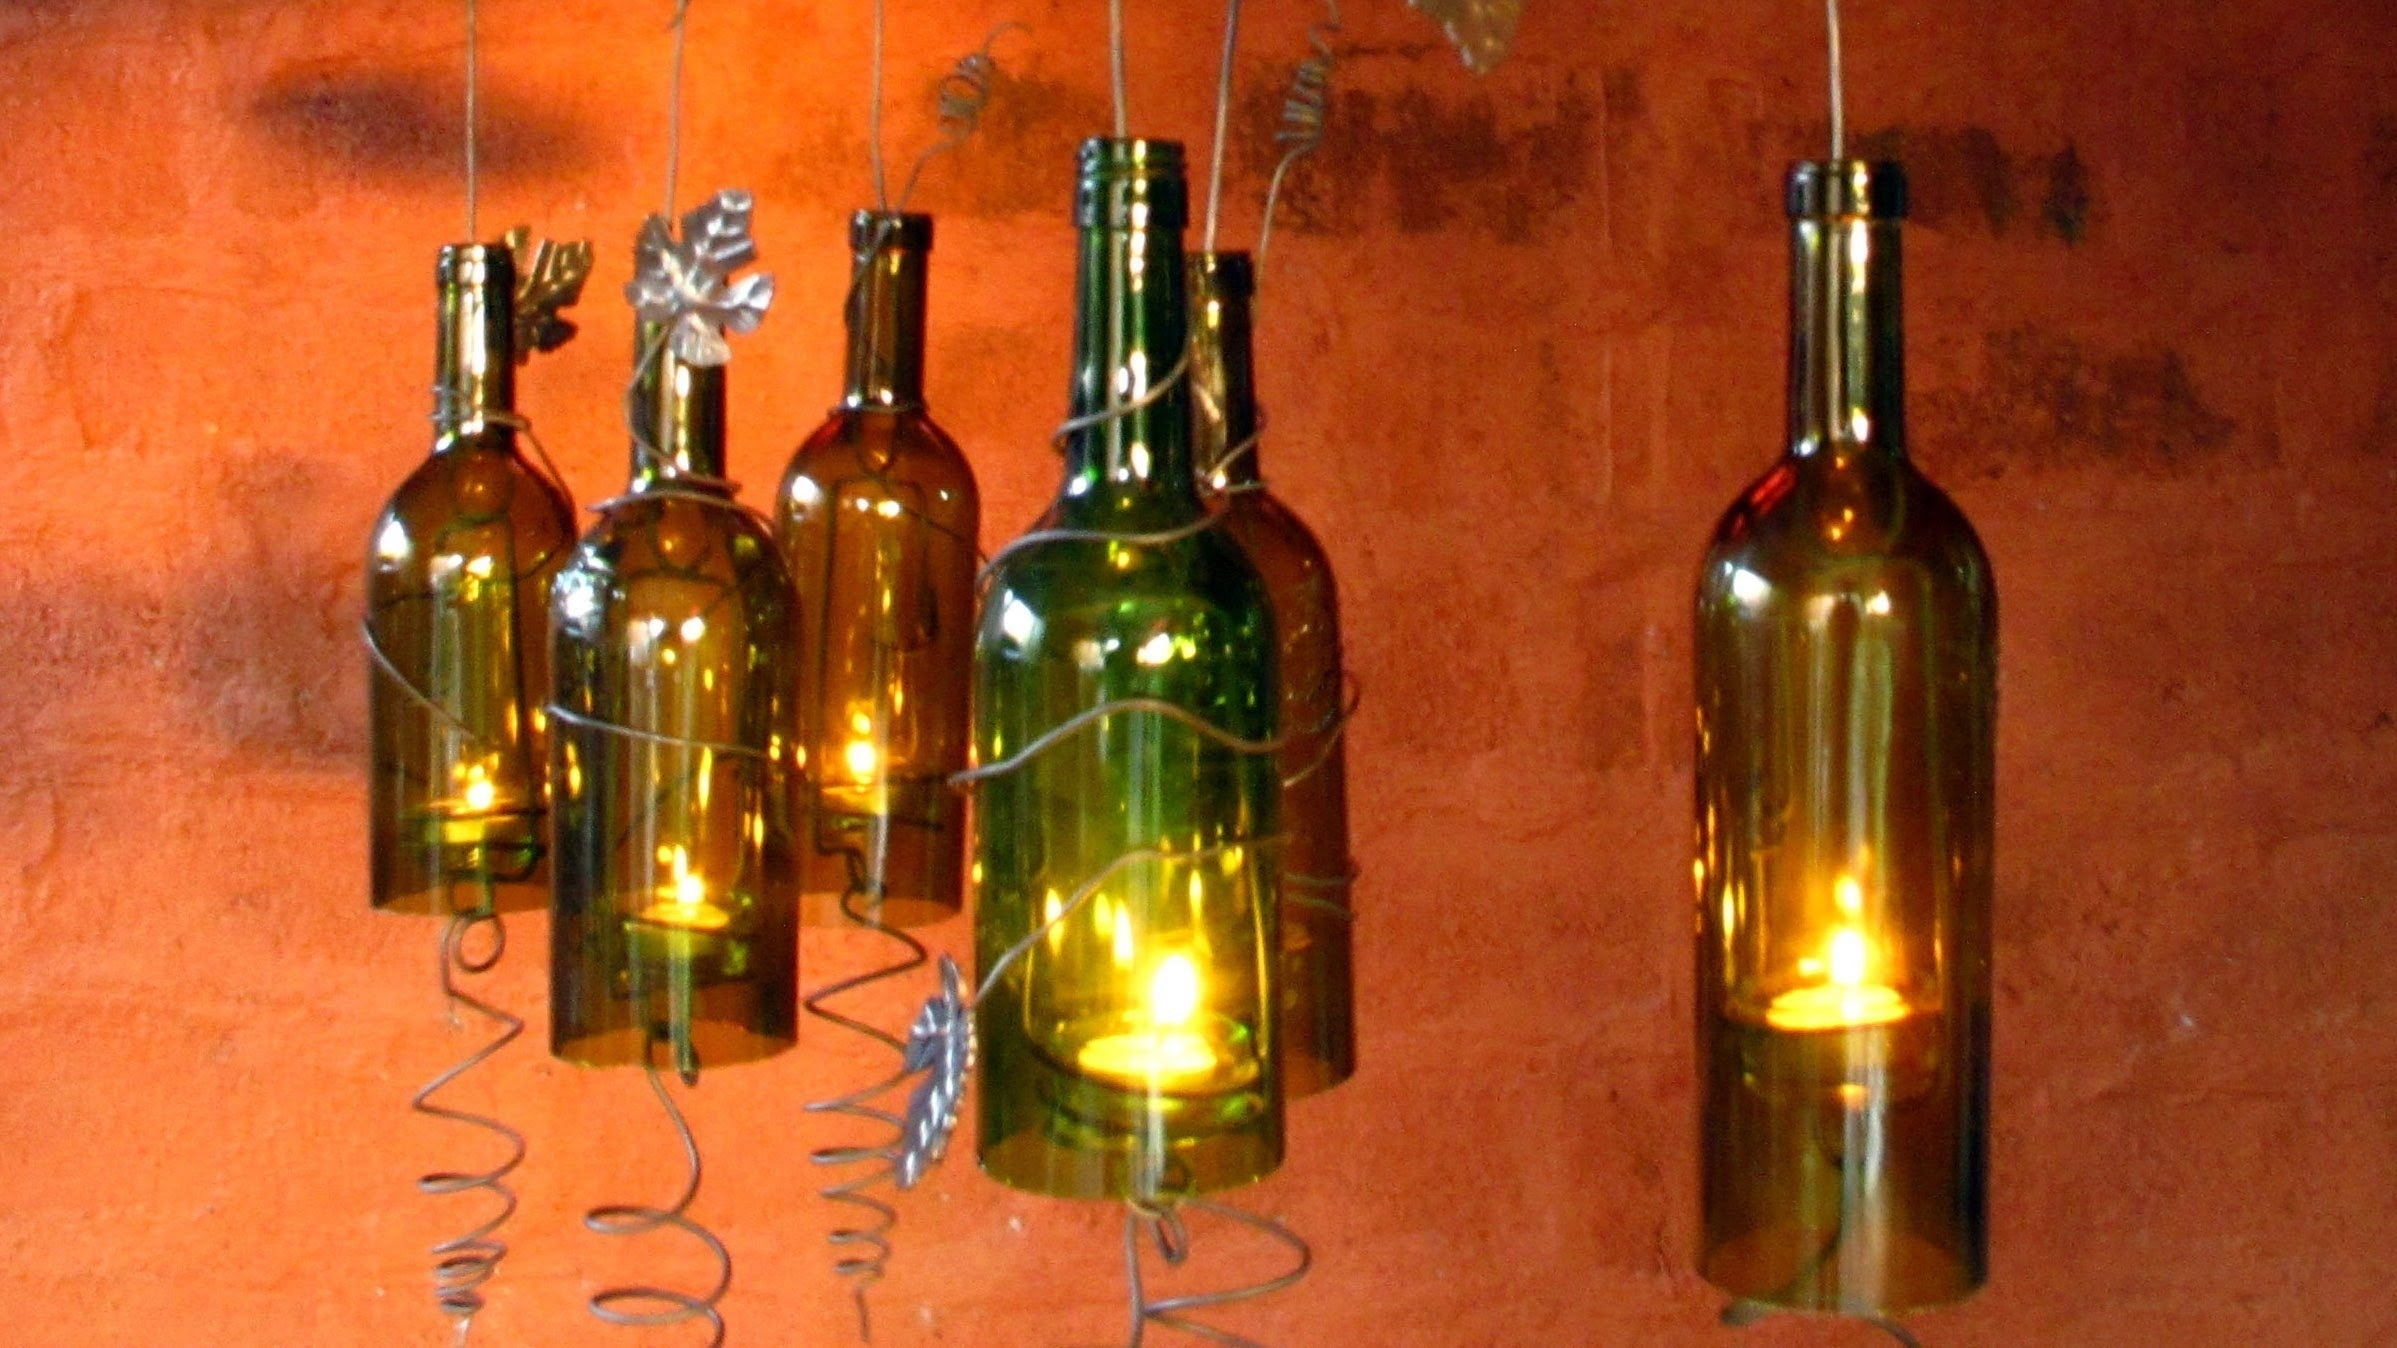 Inspiration about Recycled Wine Bottles Made Into A Hurricane Candle Holder, Diy Video Within Making Outdoor Hanging Lights From Wine Bottles (#10 of 15)